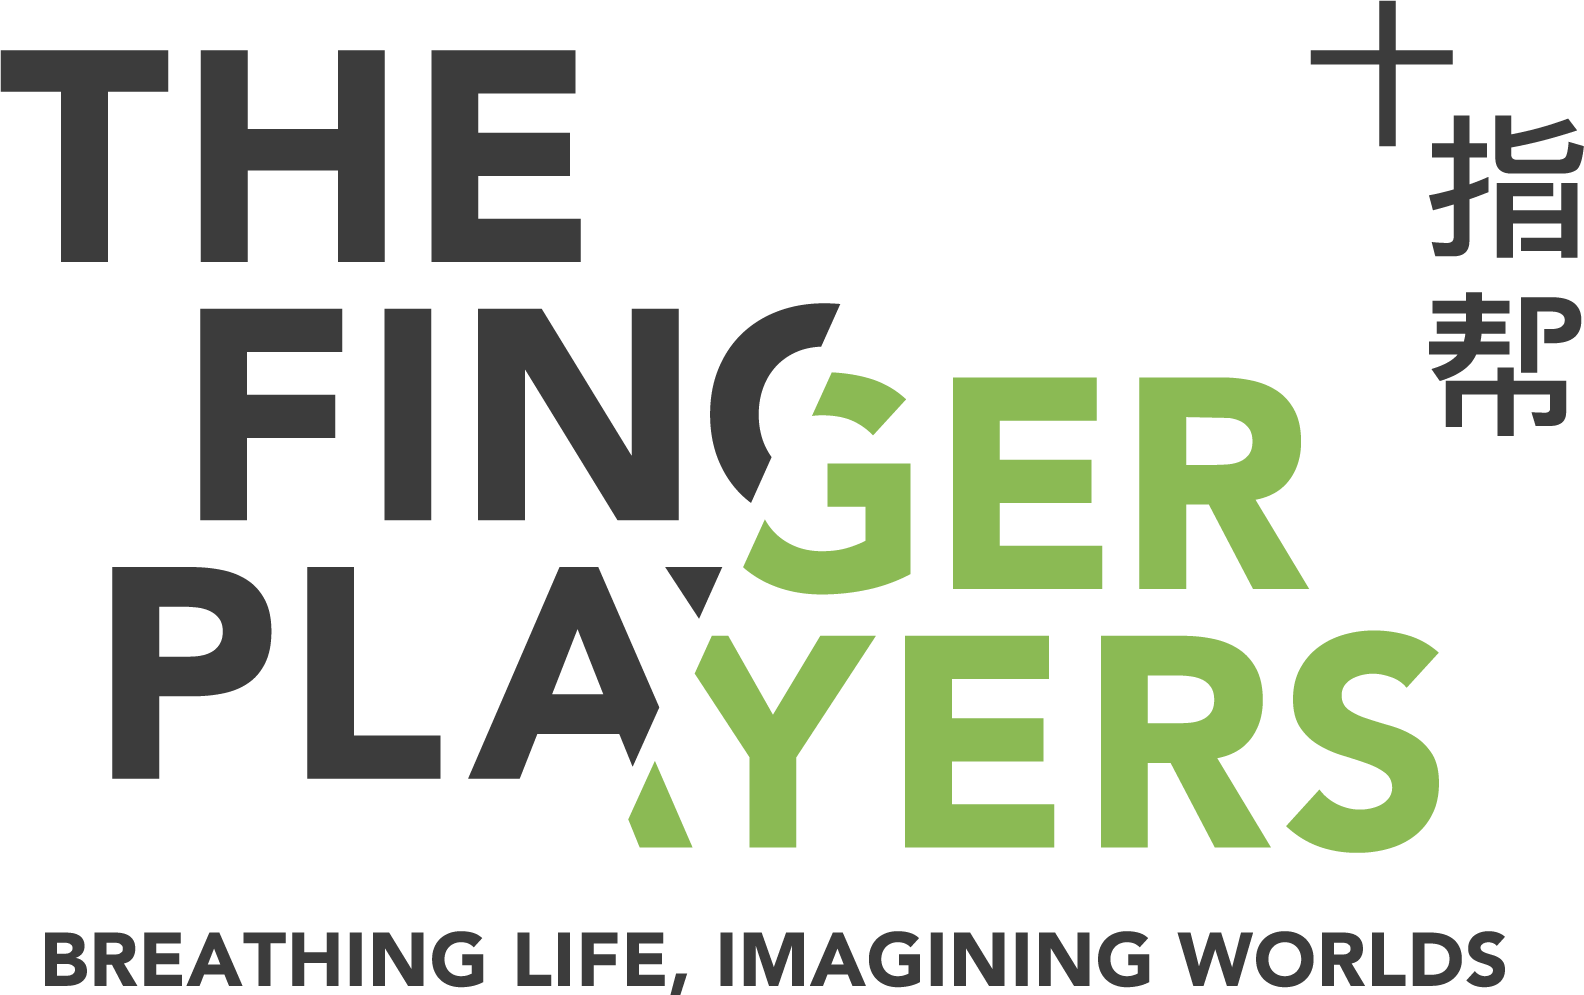 The Finger Players